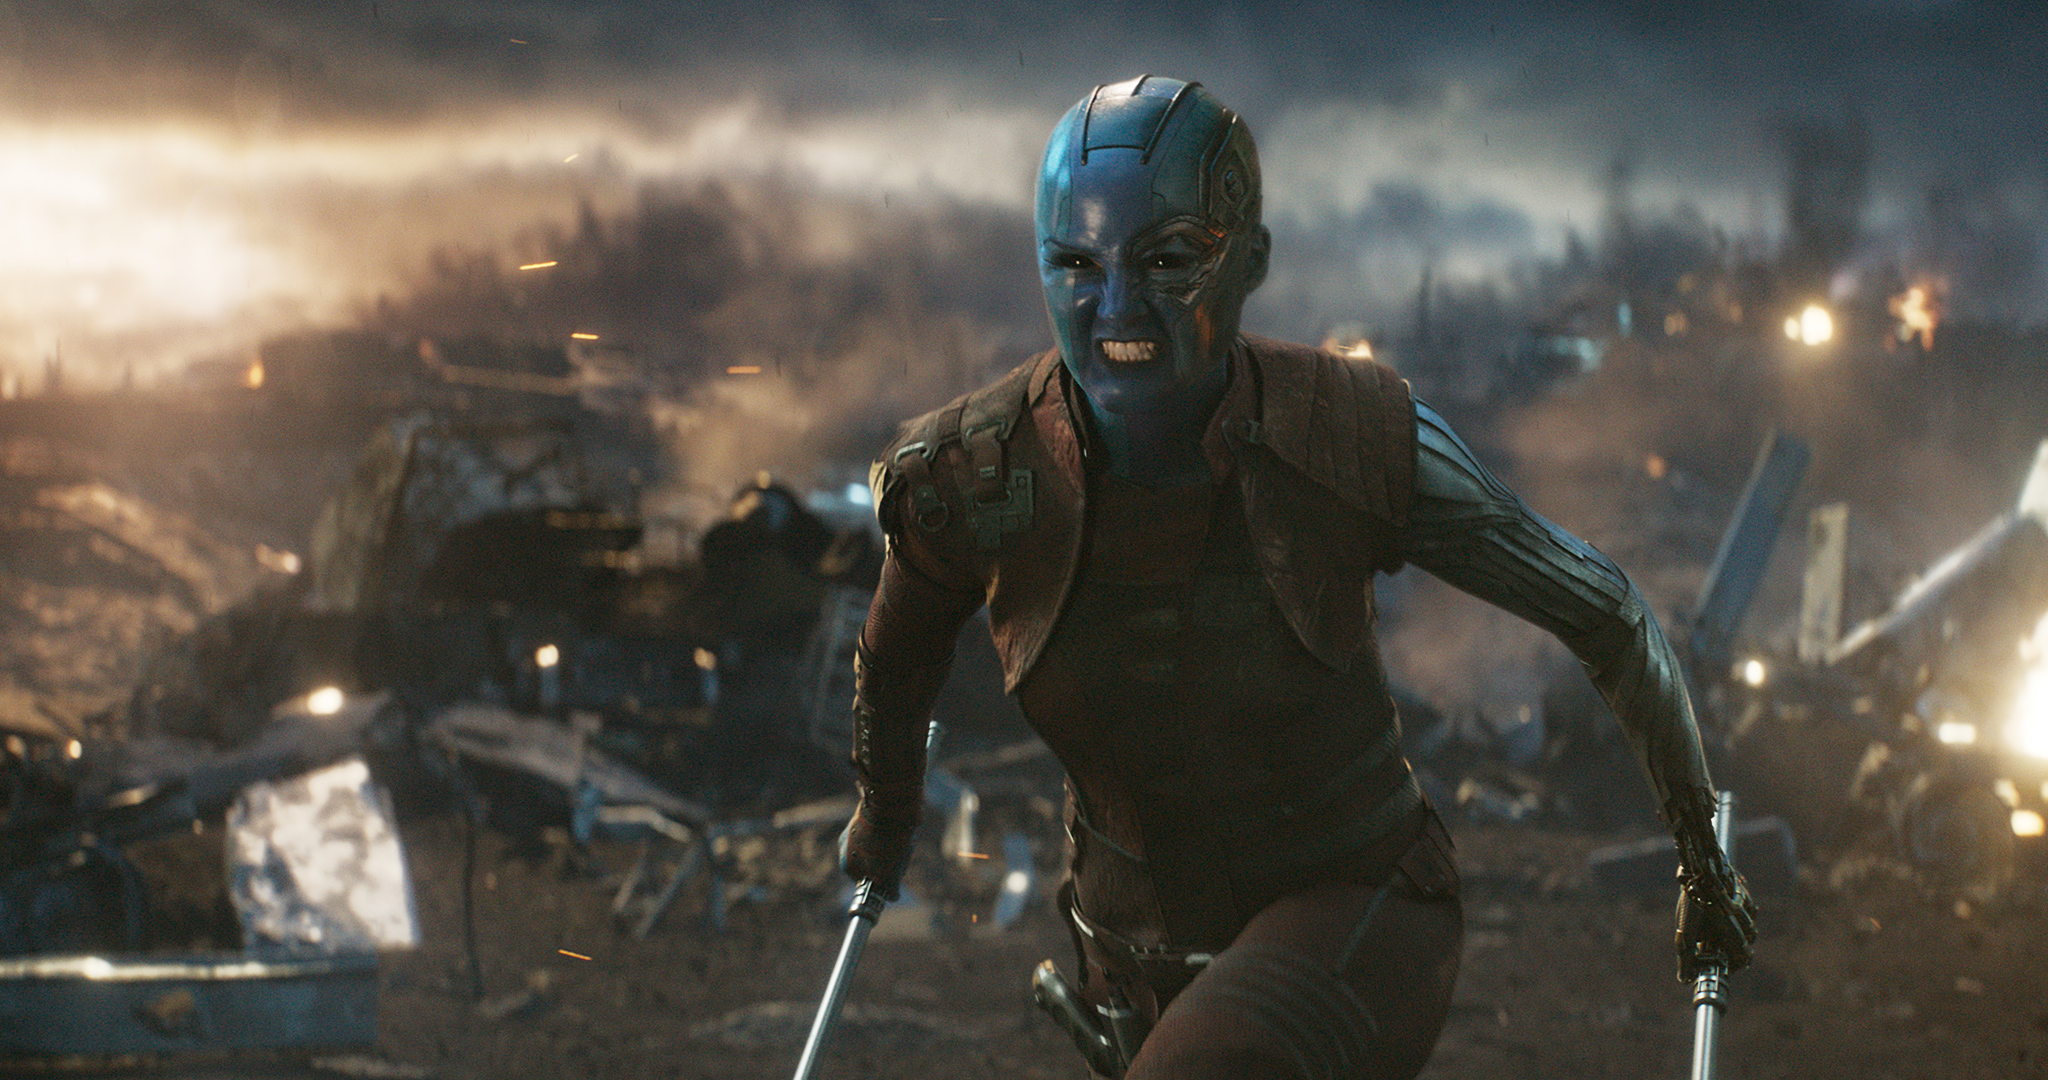 Avengers Endgame torrent trends in USA despite viruses - Marvel Studios' AVENGERS: ENDGAME..Nebula (Karen Gillan)..Photo: Film Frame..©Marvel Studios 2019